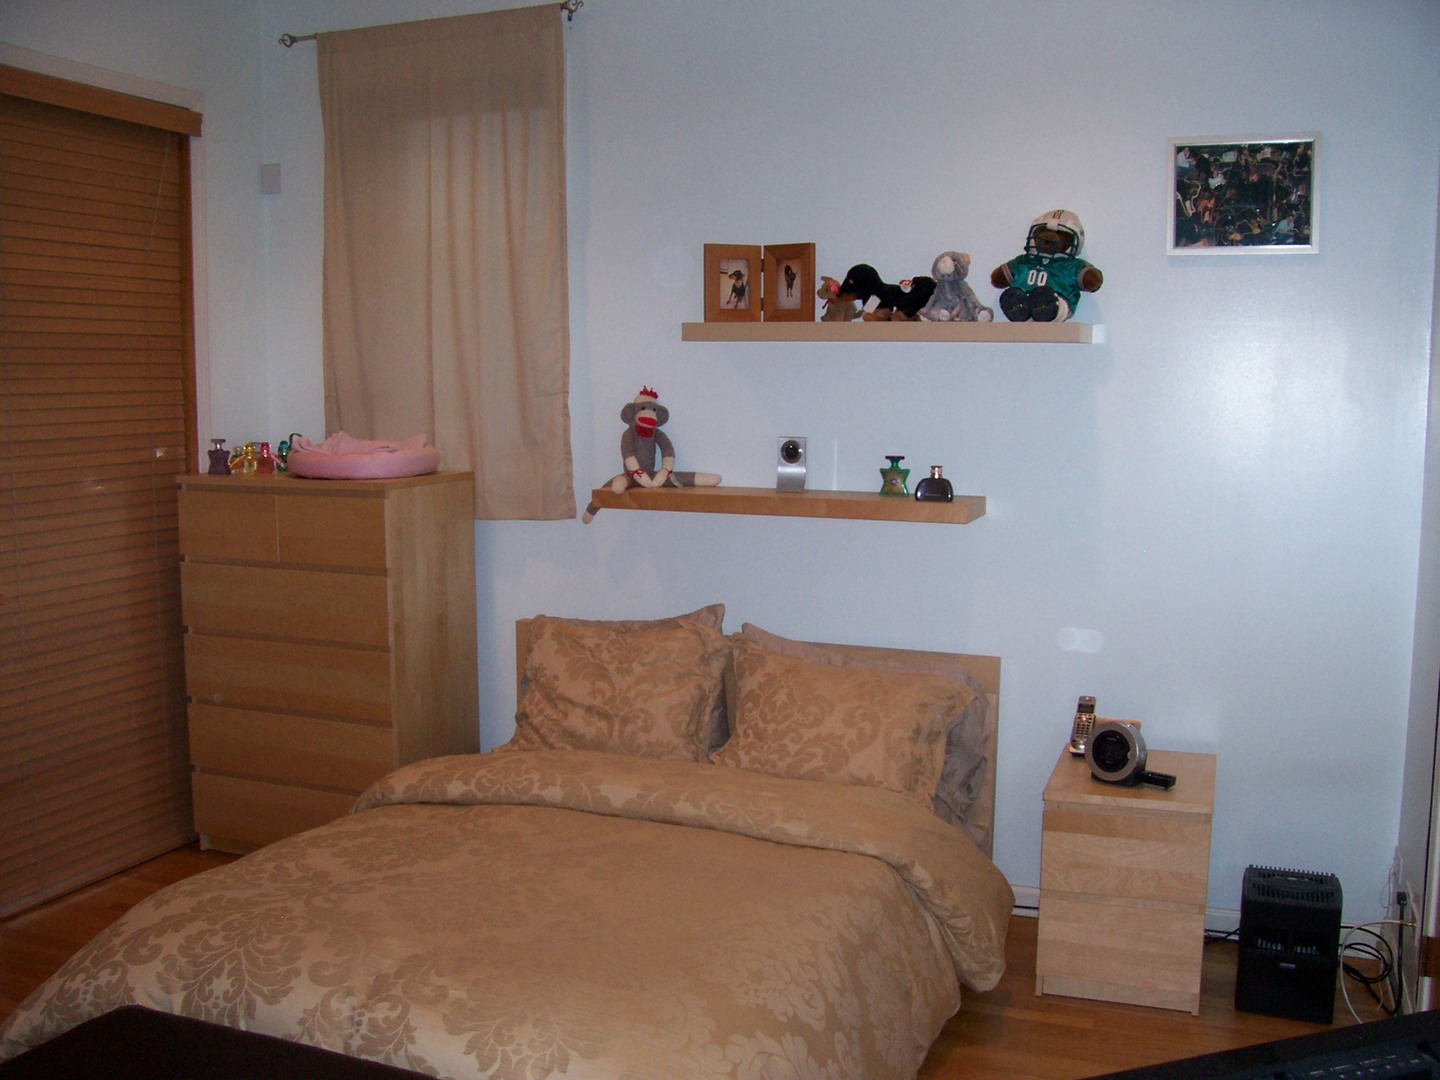 1012 N Wolcott Ave apartments for rent at AptAmigo